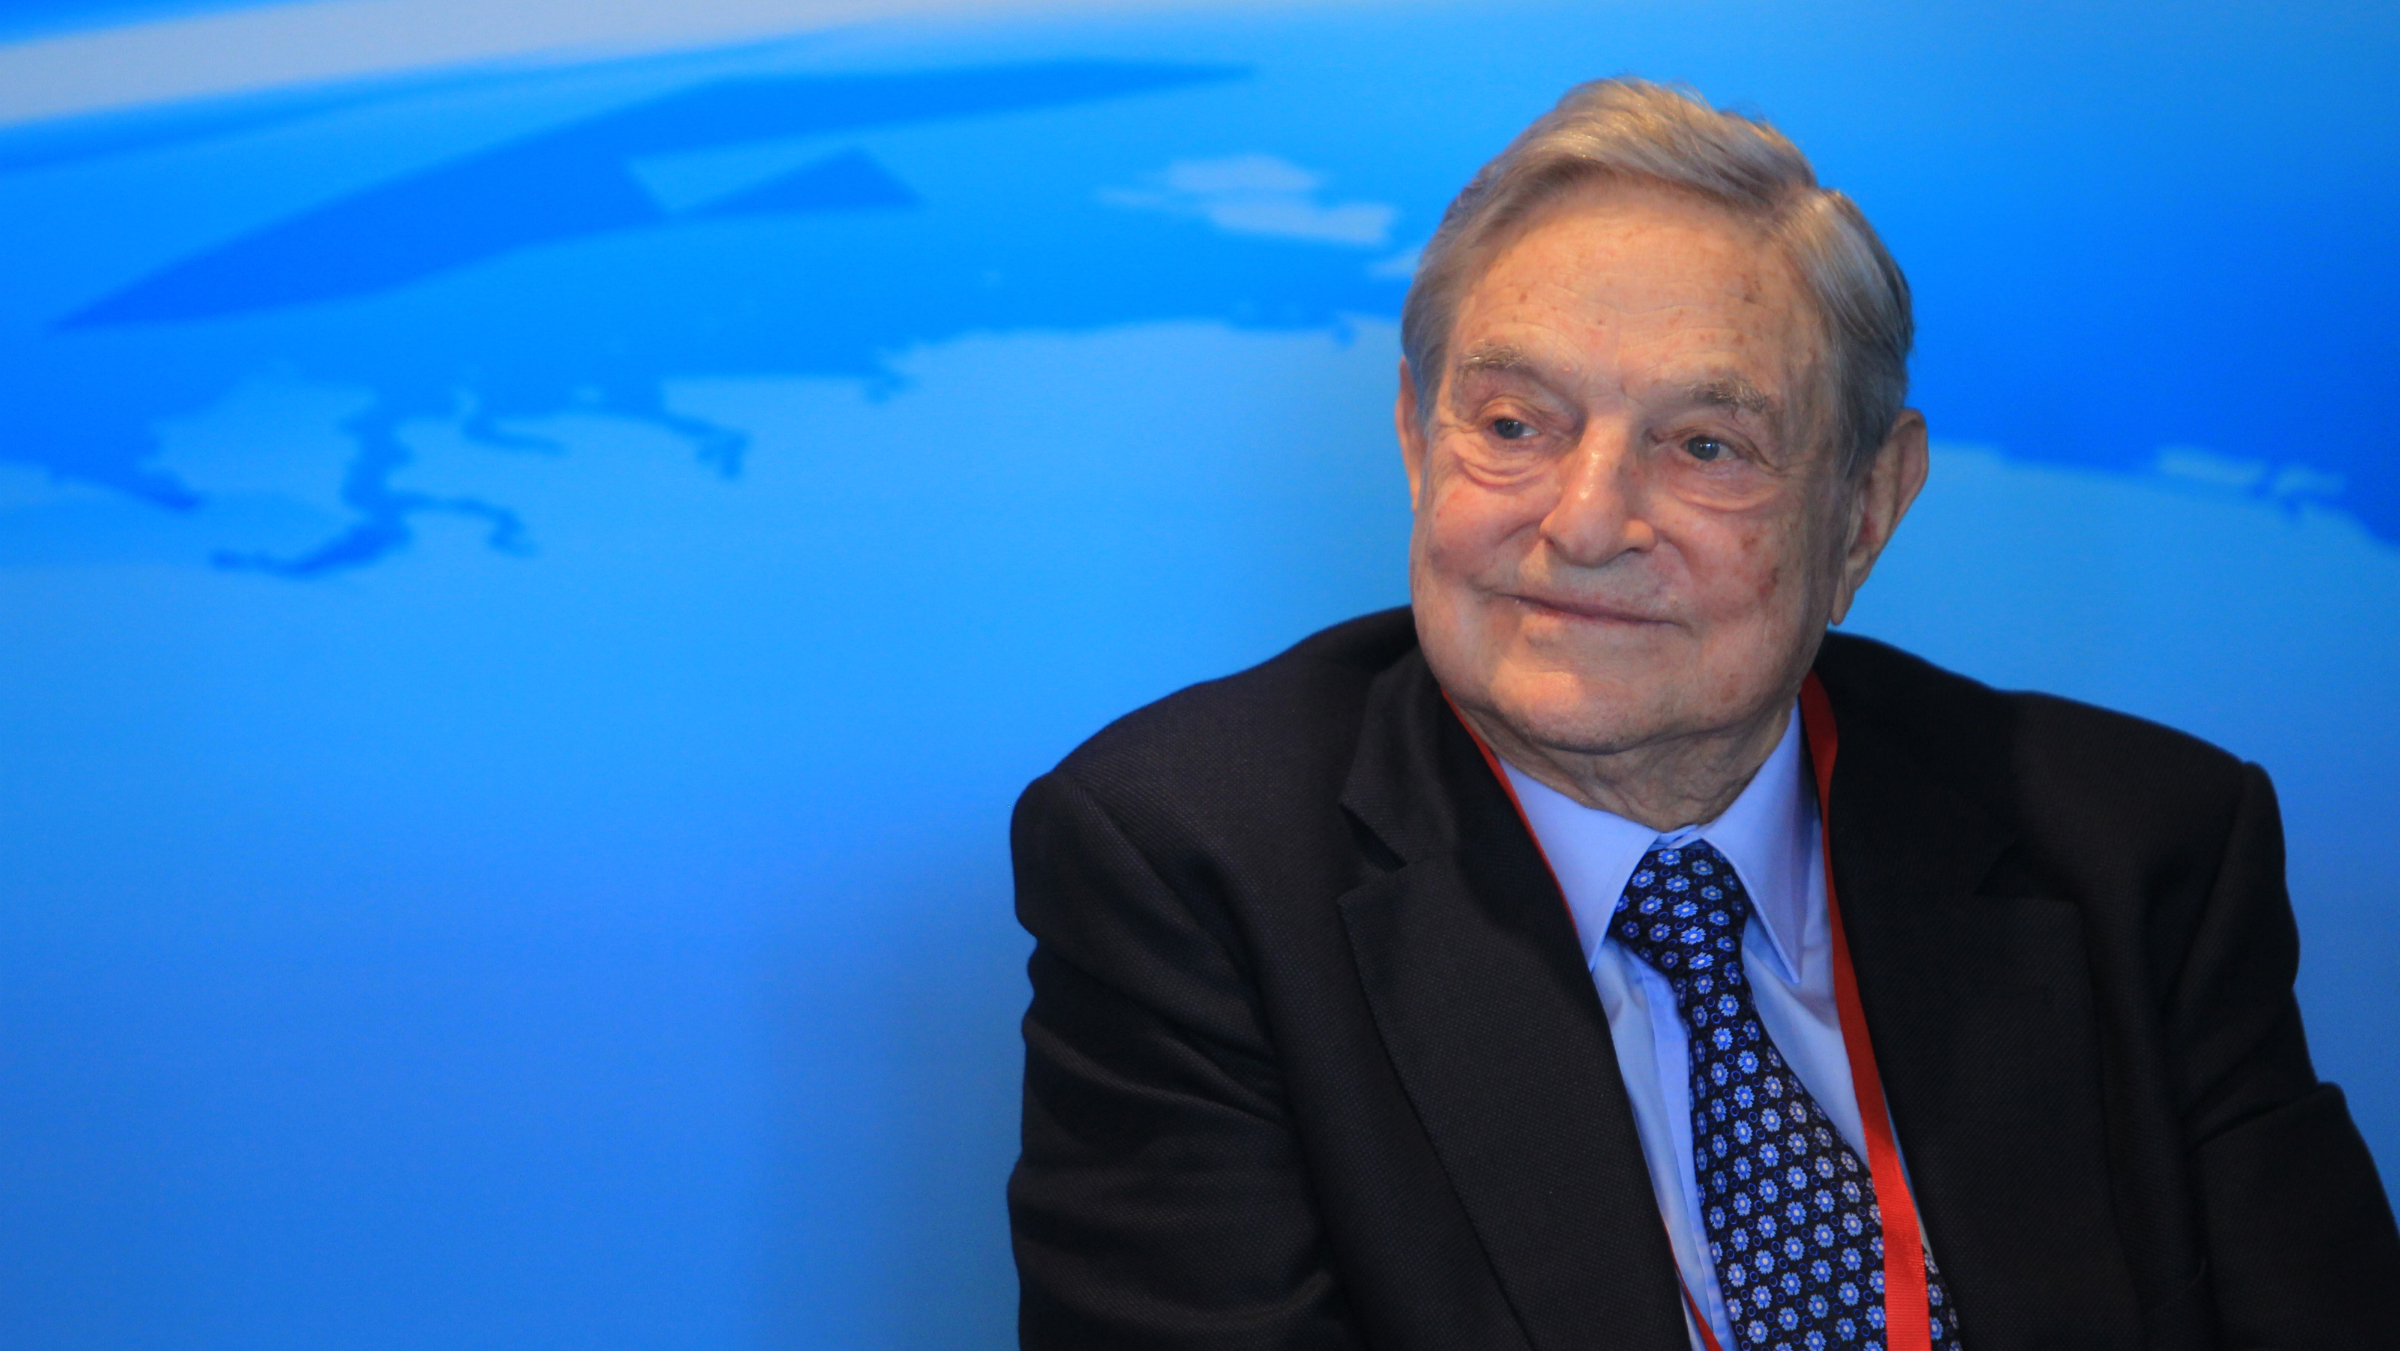 Soros: Not dead, and doing rather nicely, thank you.